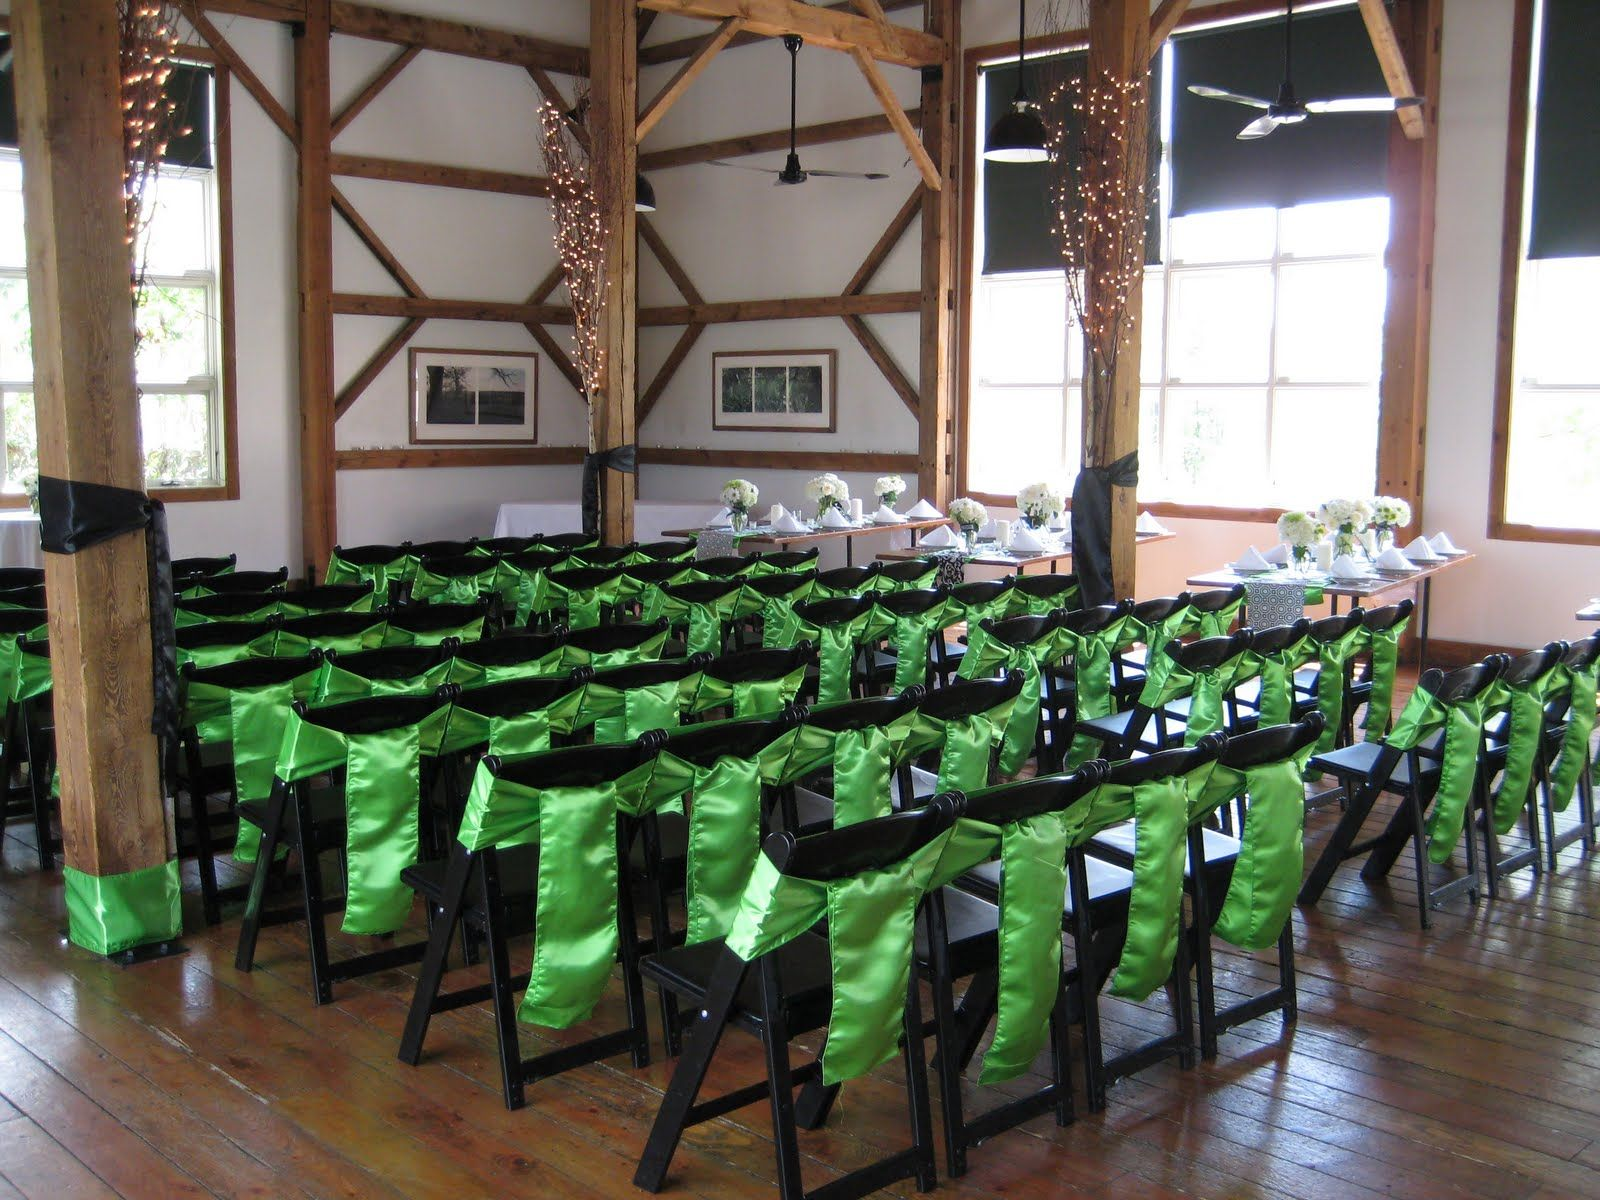 Metal Chair Covers Wedding Bedroom No Arms Cute Idea For Decorating Folding Chairs